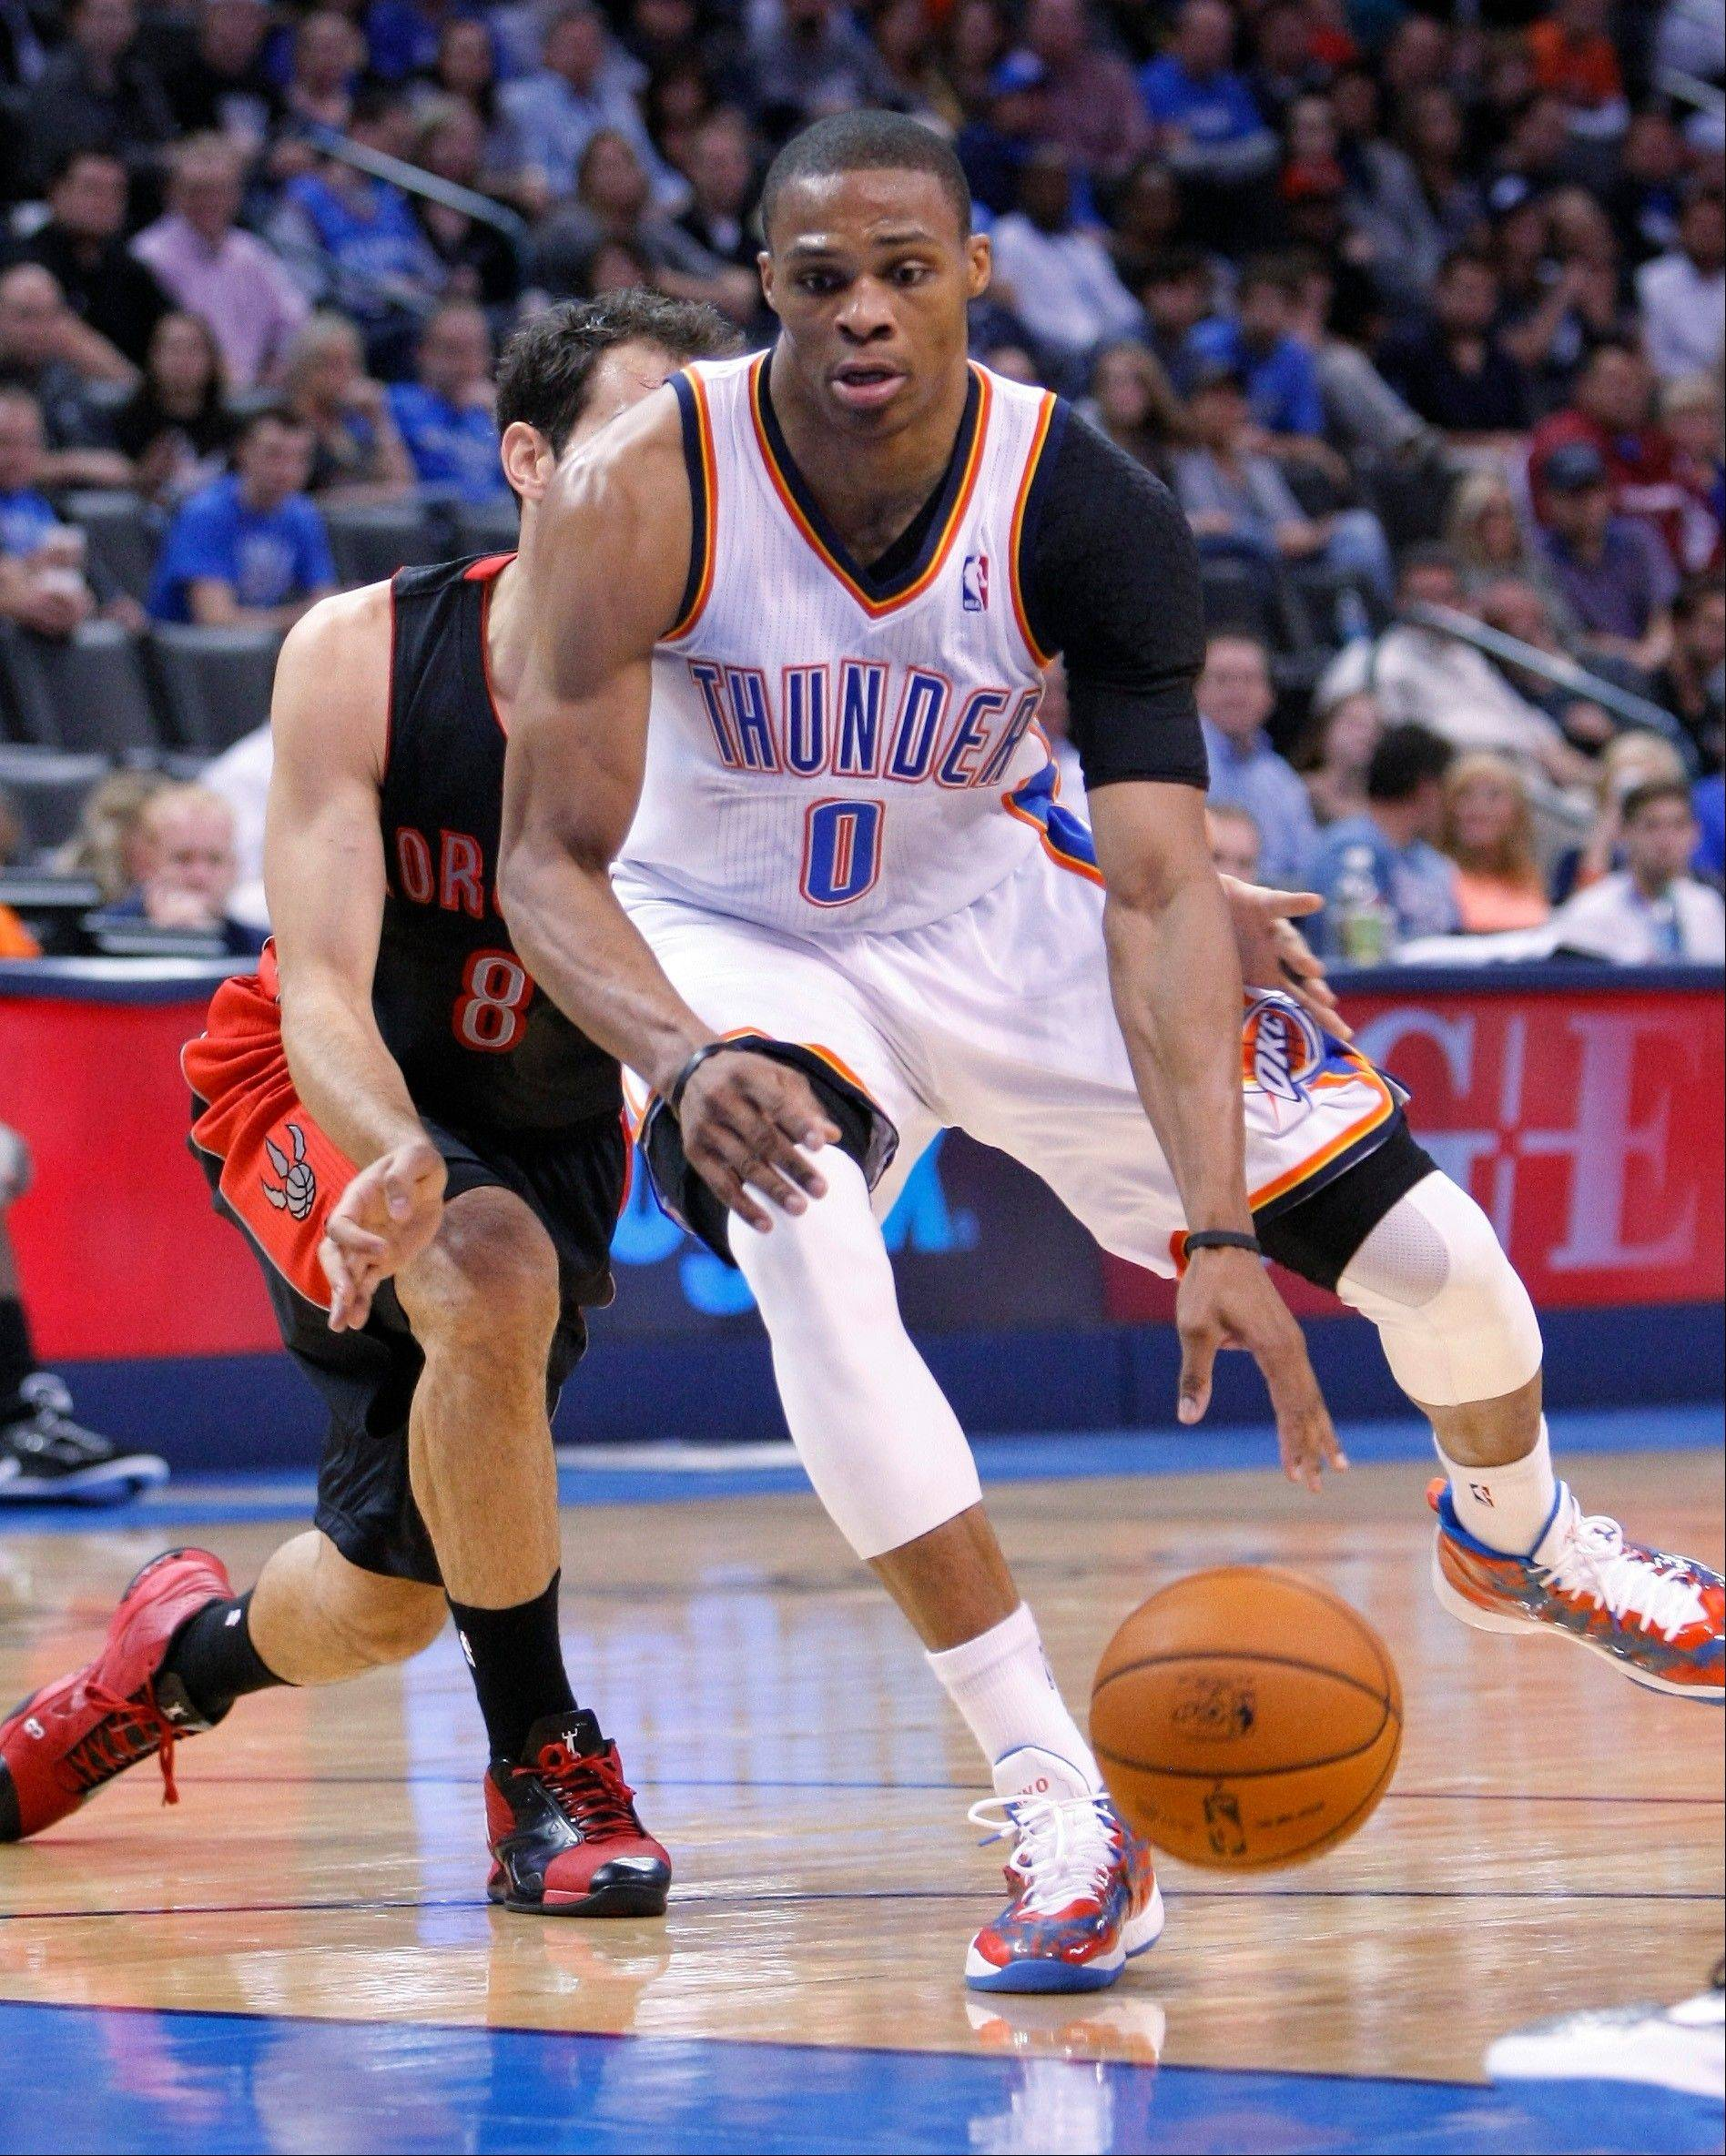 Oklahoma City Thunder guard Russell Westbrook (0) drives to the basket in front of Toronto Raptors guard Jose Calderon during the third quarter of an NBA basketball game in Oklahoma City, Tuesday, Nov. 6, 2012. Oklahoma City won 108-88.